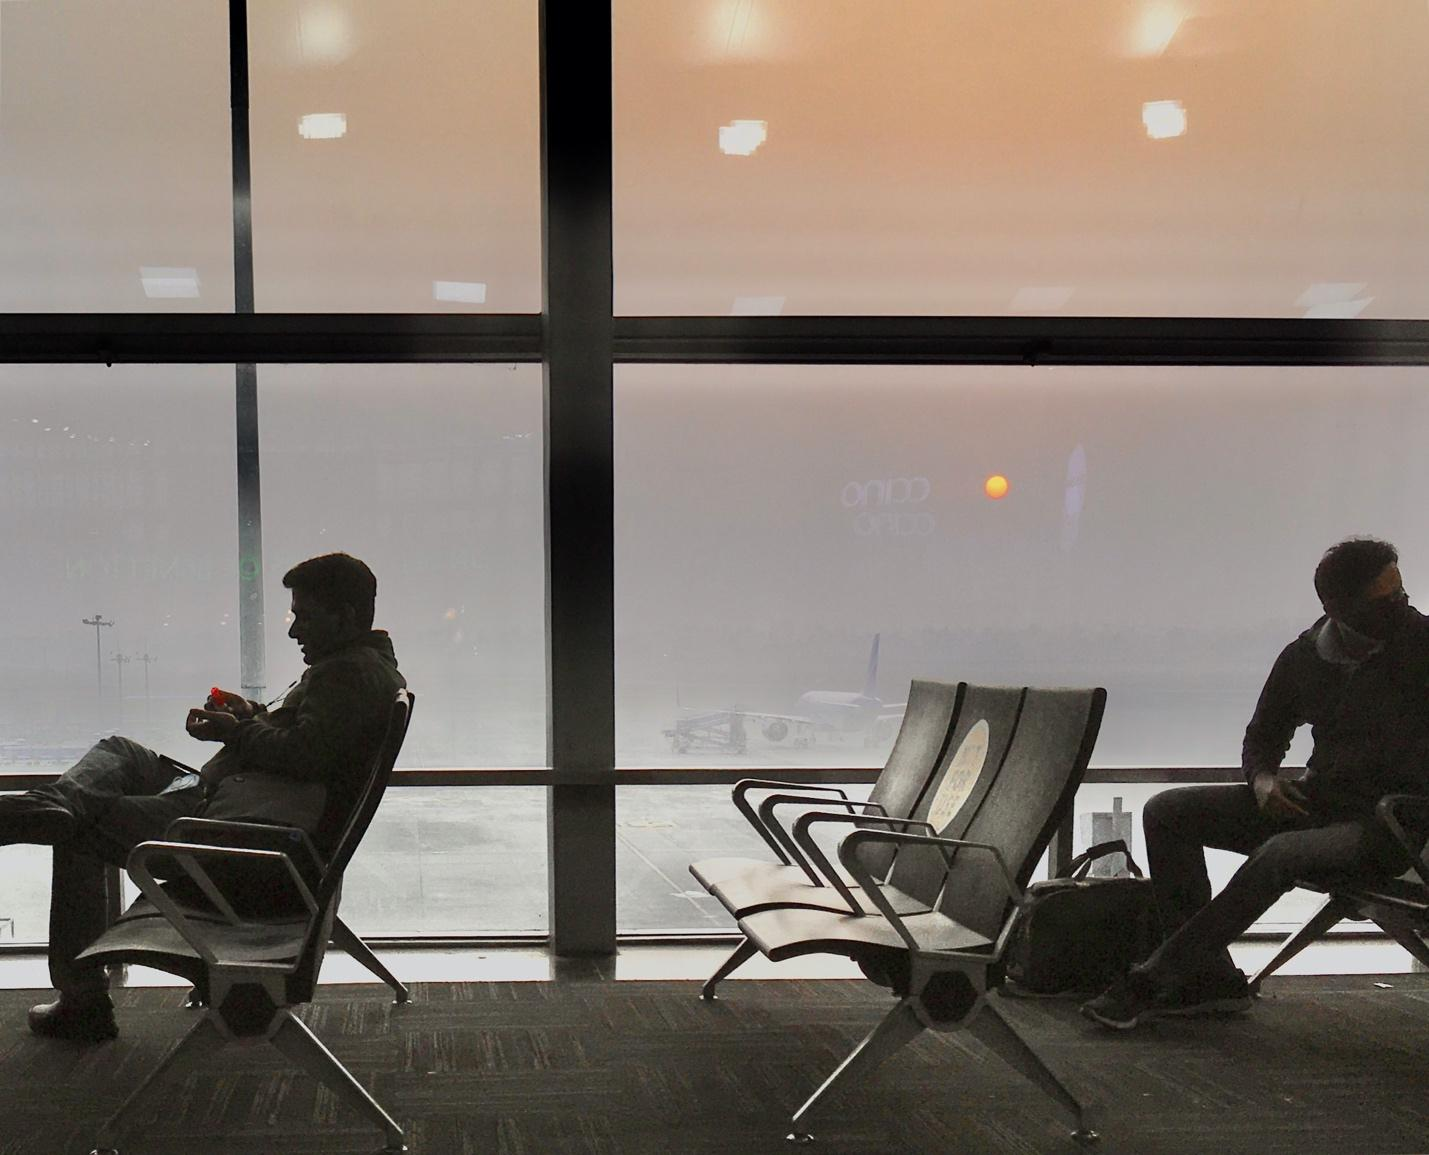 Image of people waiting at an airport, sitting socially distanced